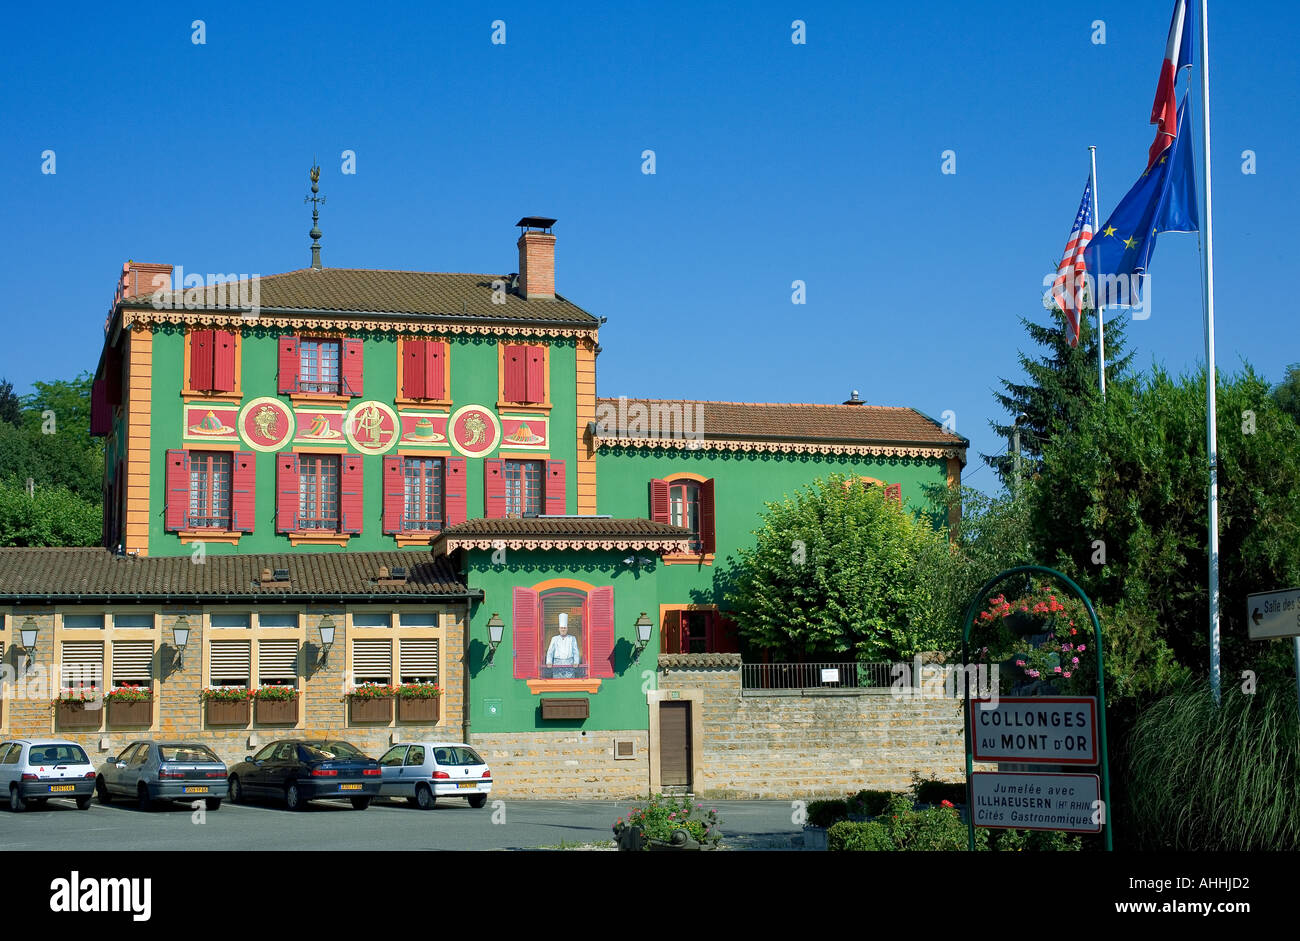 paul bocuse restaurant collonges au mont d 39 or lyon france stock photo royalty free image. Black Bedroom Furniture Sets. Home Design Ideas